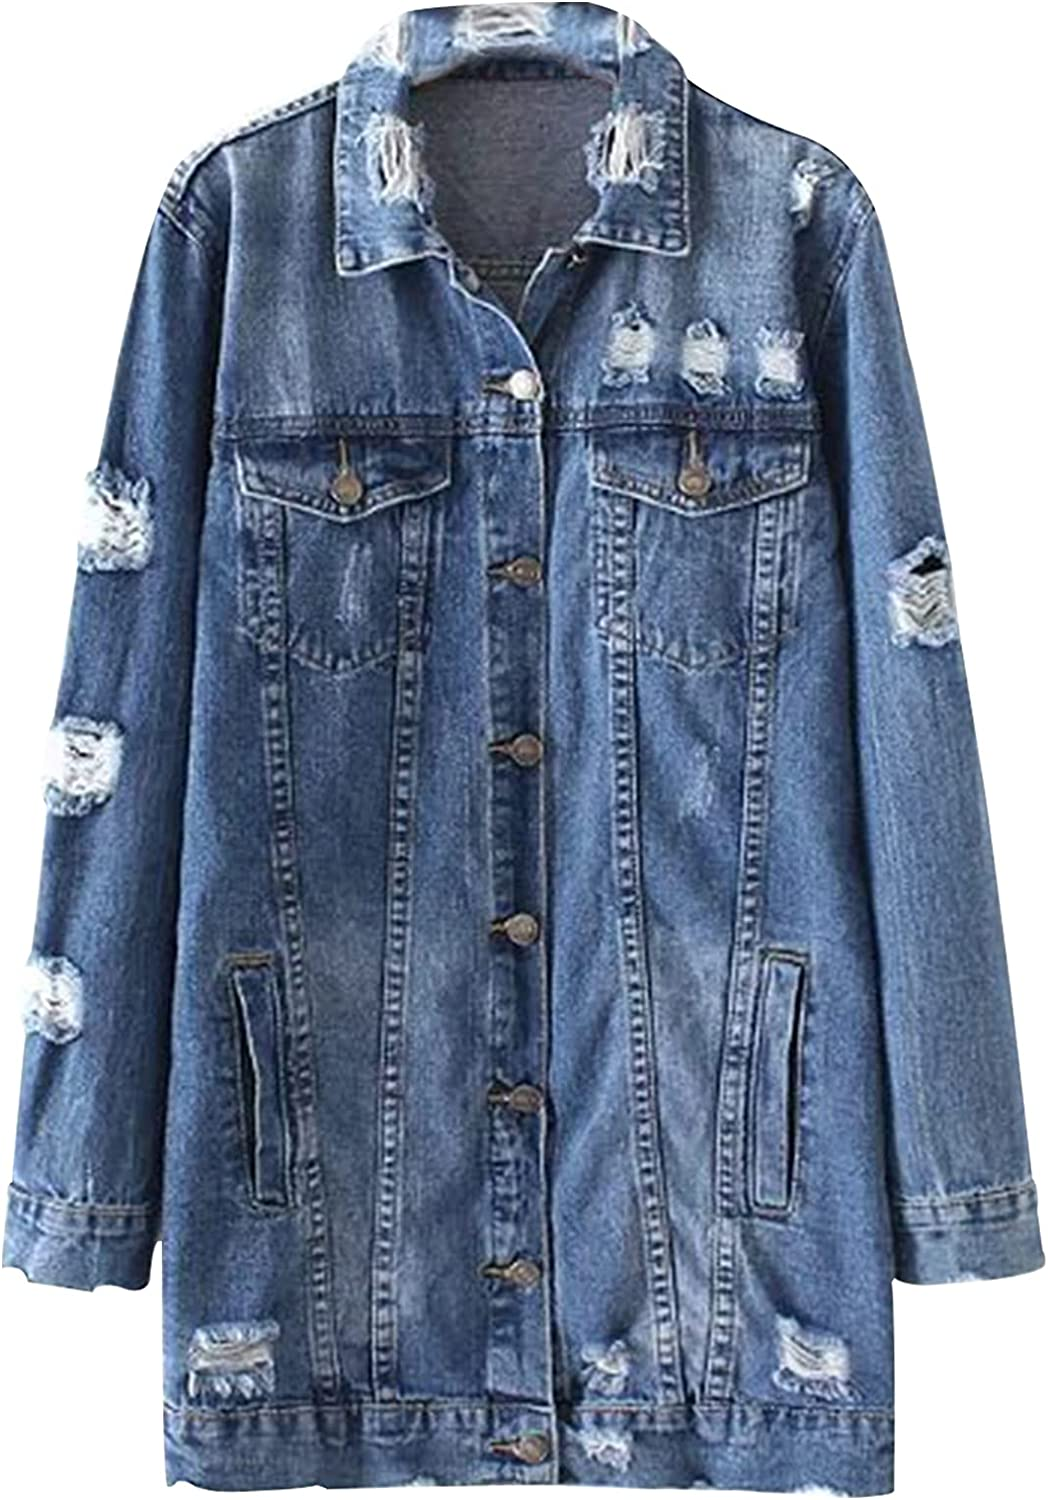 Gihuo Women' s Ripped Distressed Denim Jacket Button Down Long Jean Coat